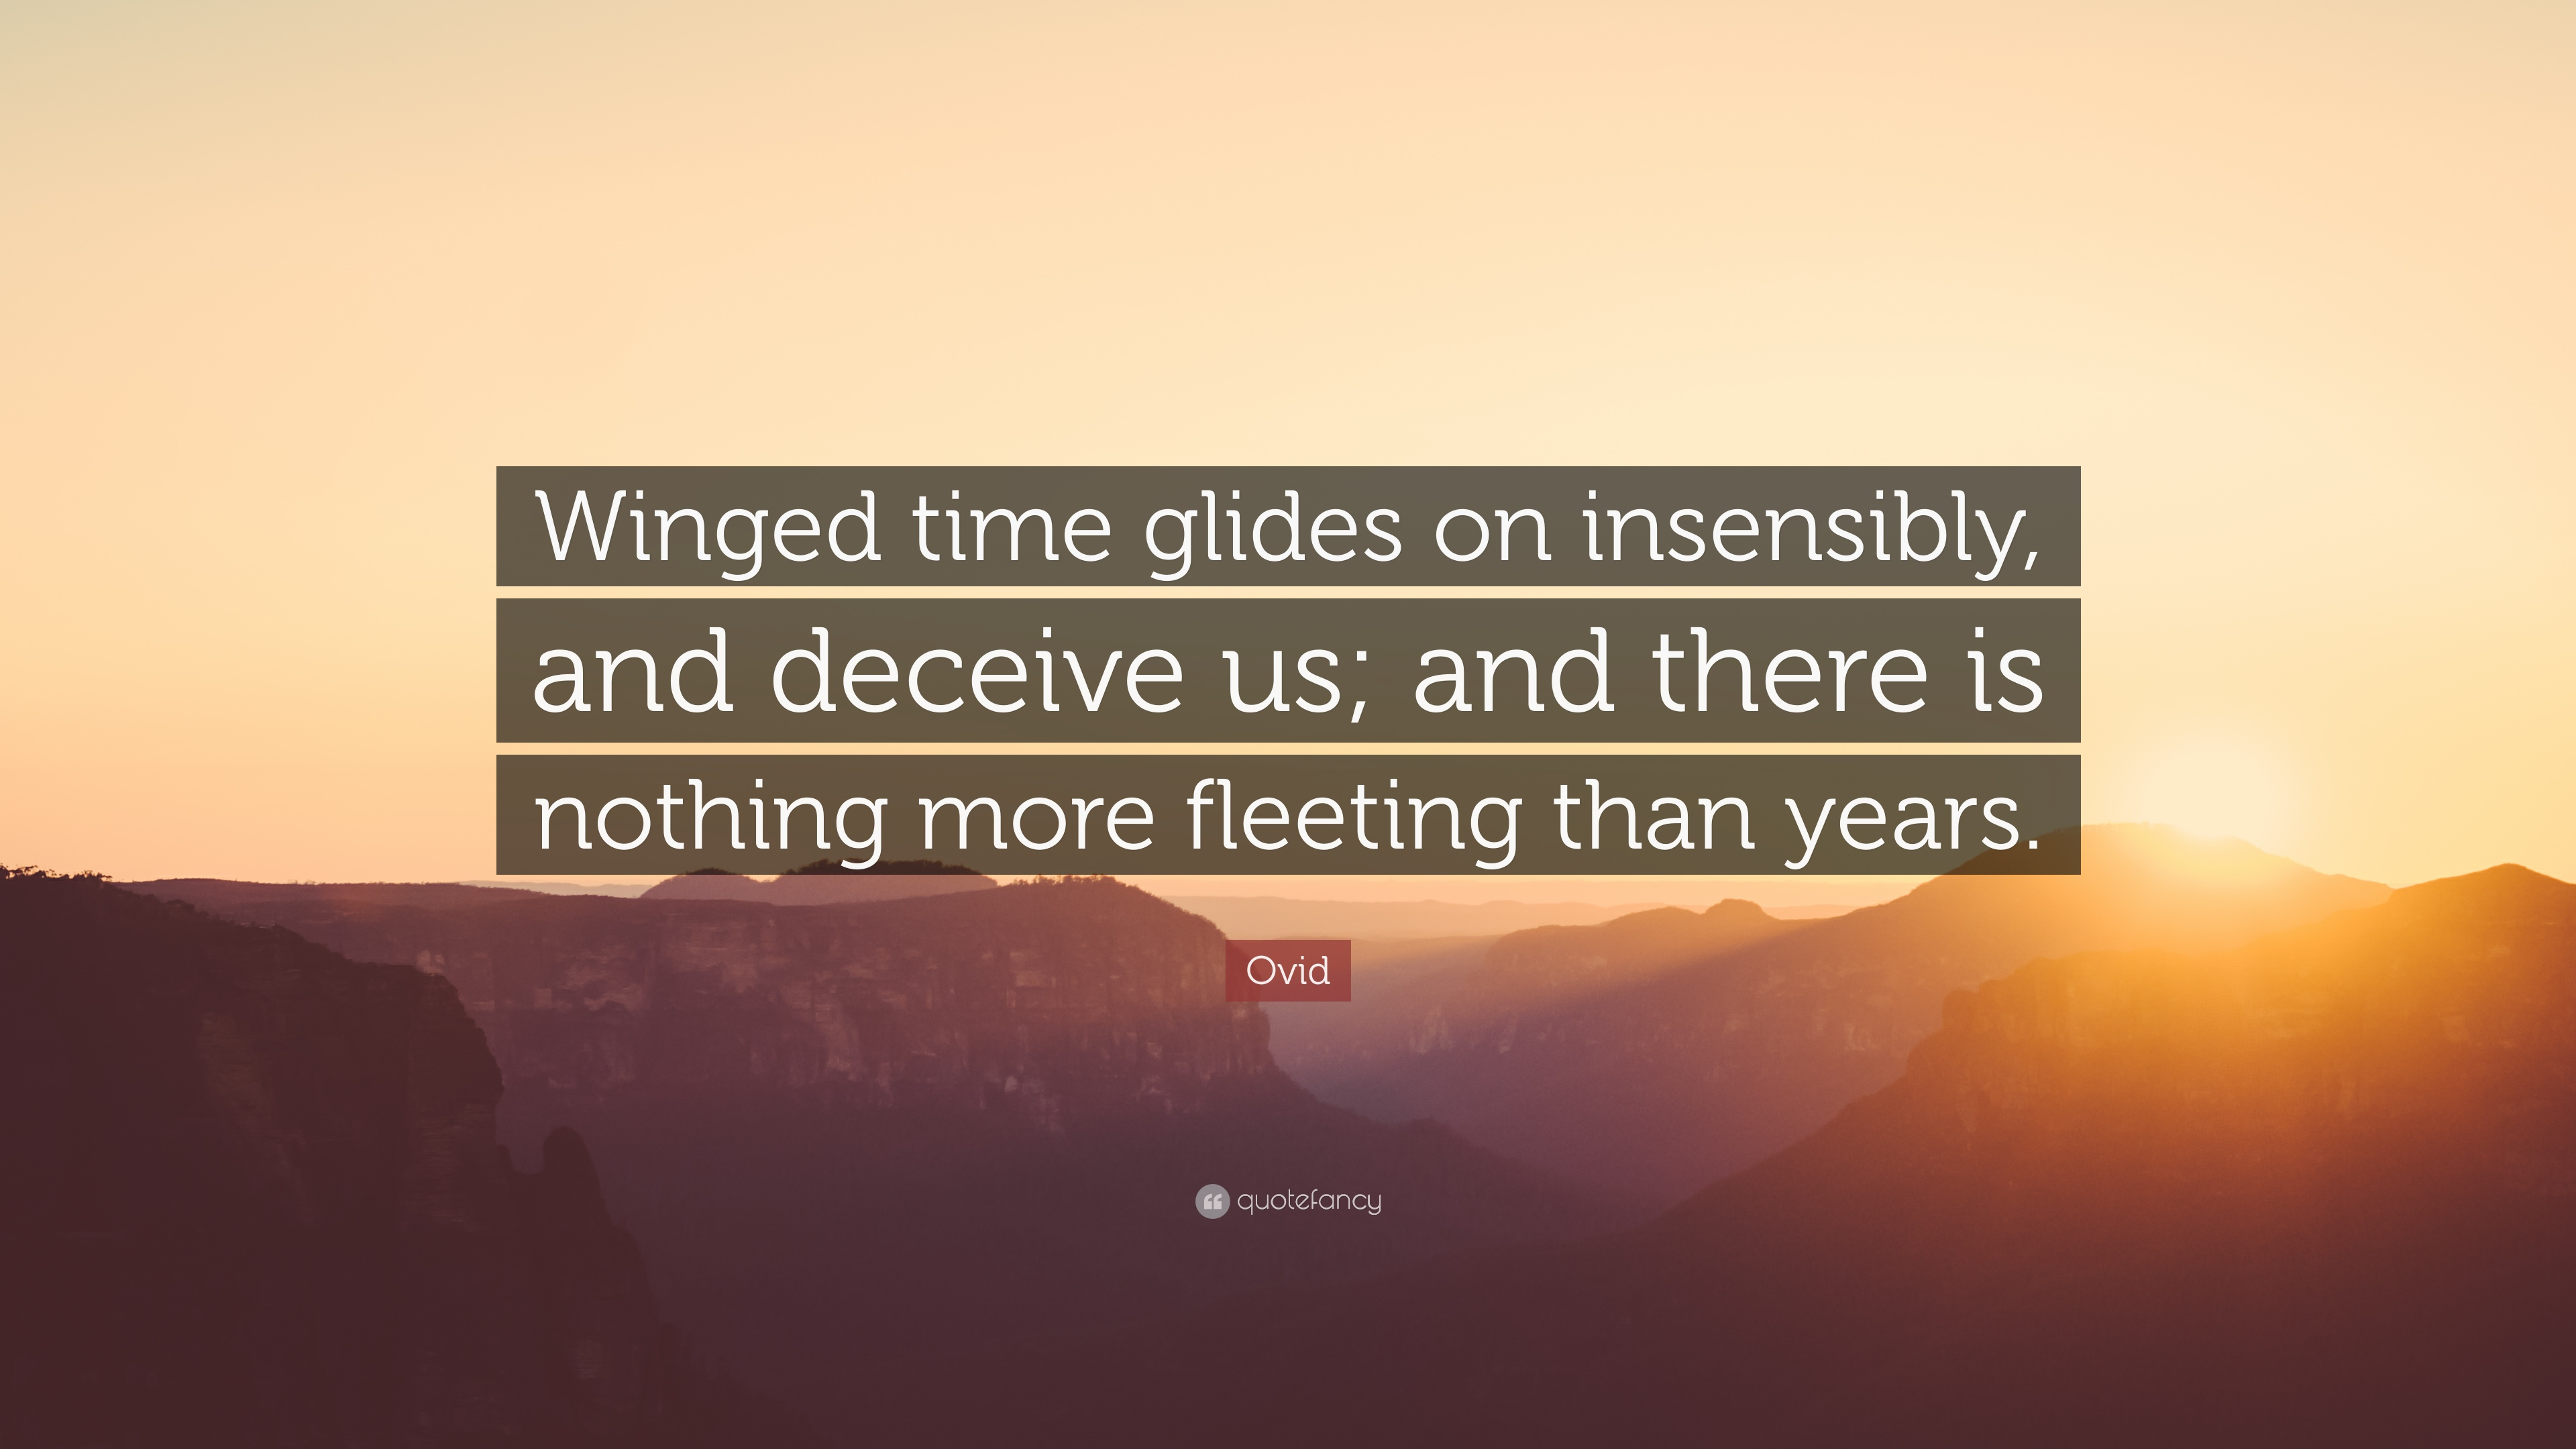 High Quality Ovid Quote: U201cWinged Time Glides On Insensibly, And Deceive Us; And There